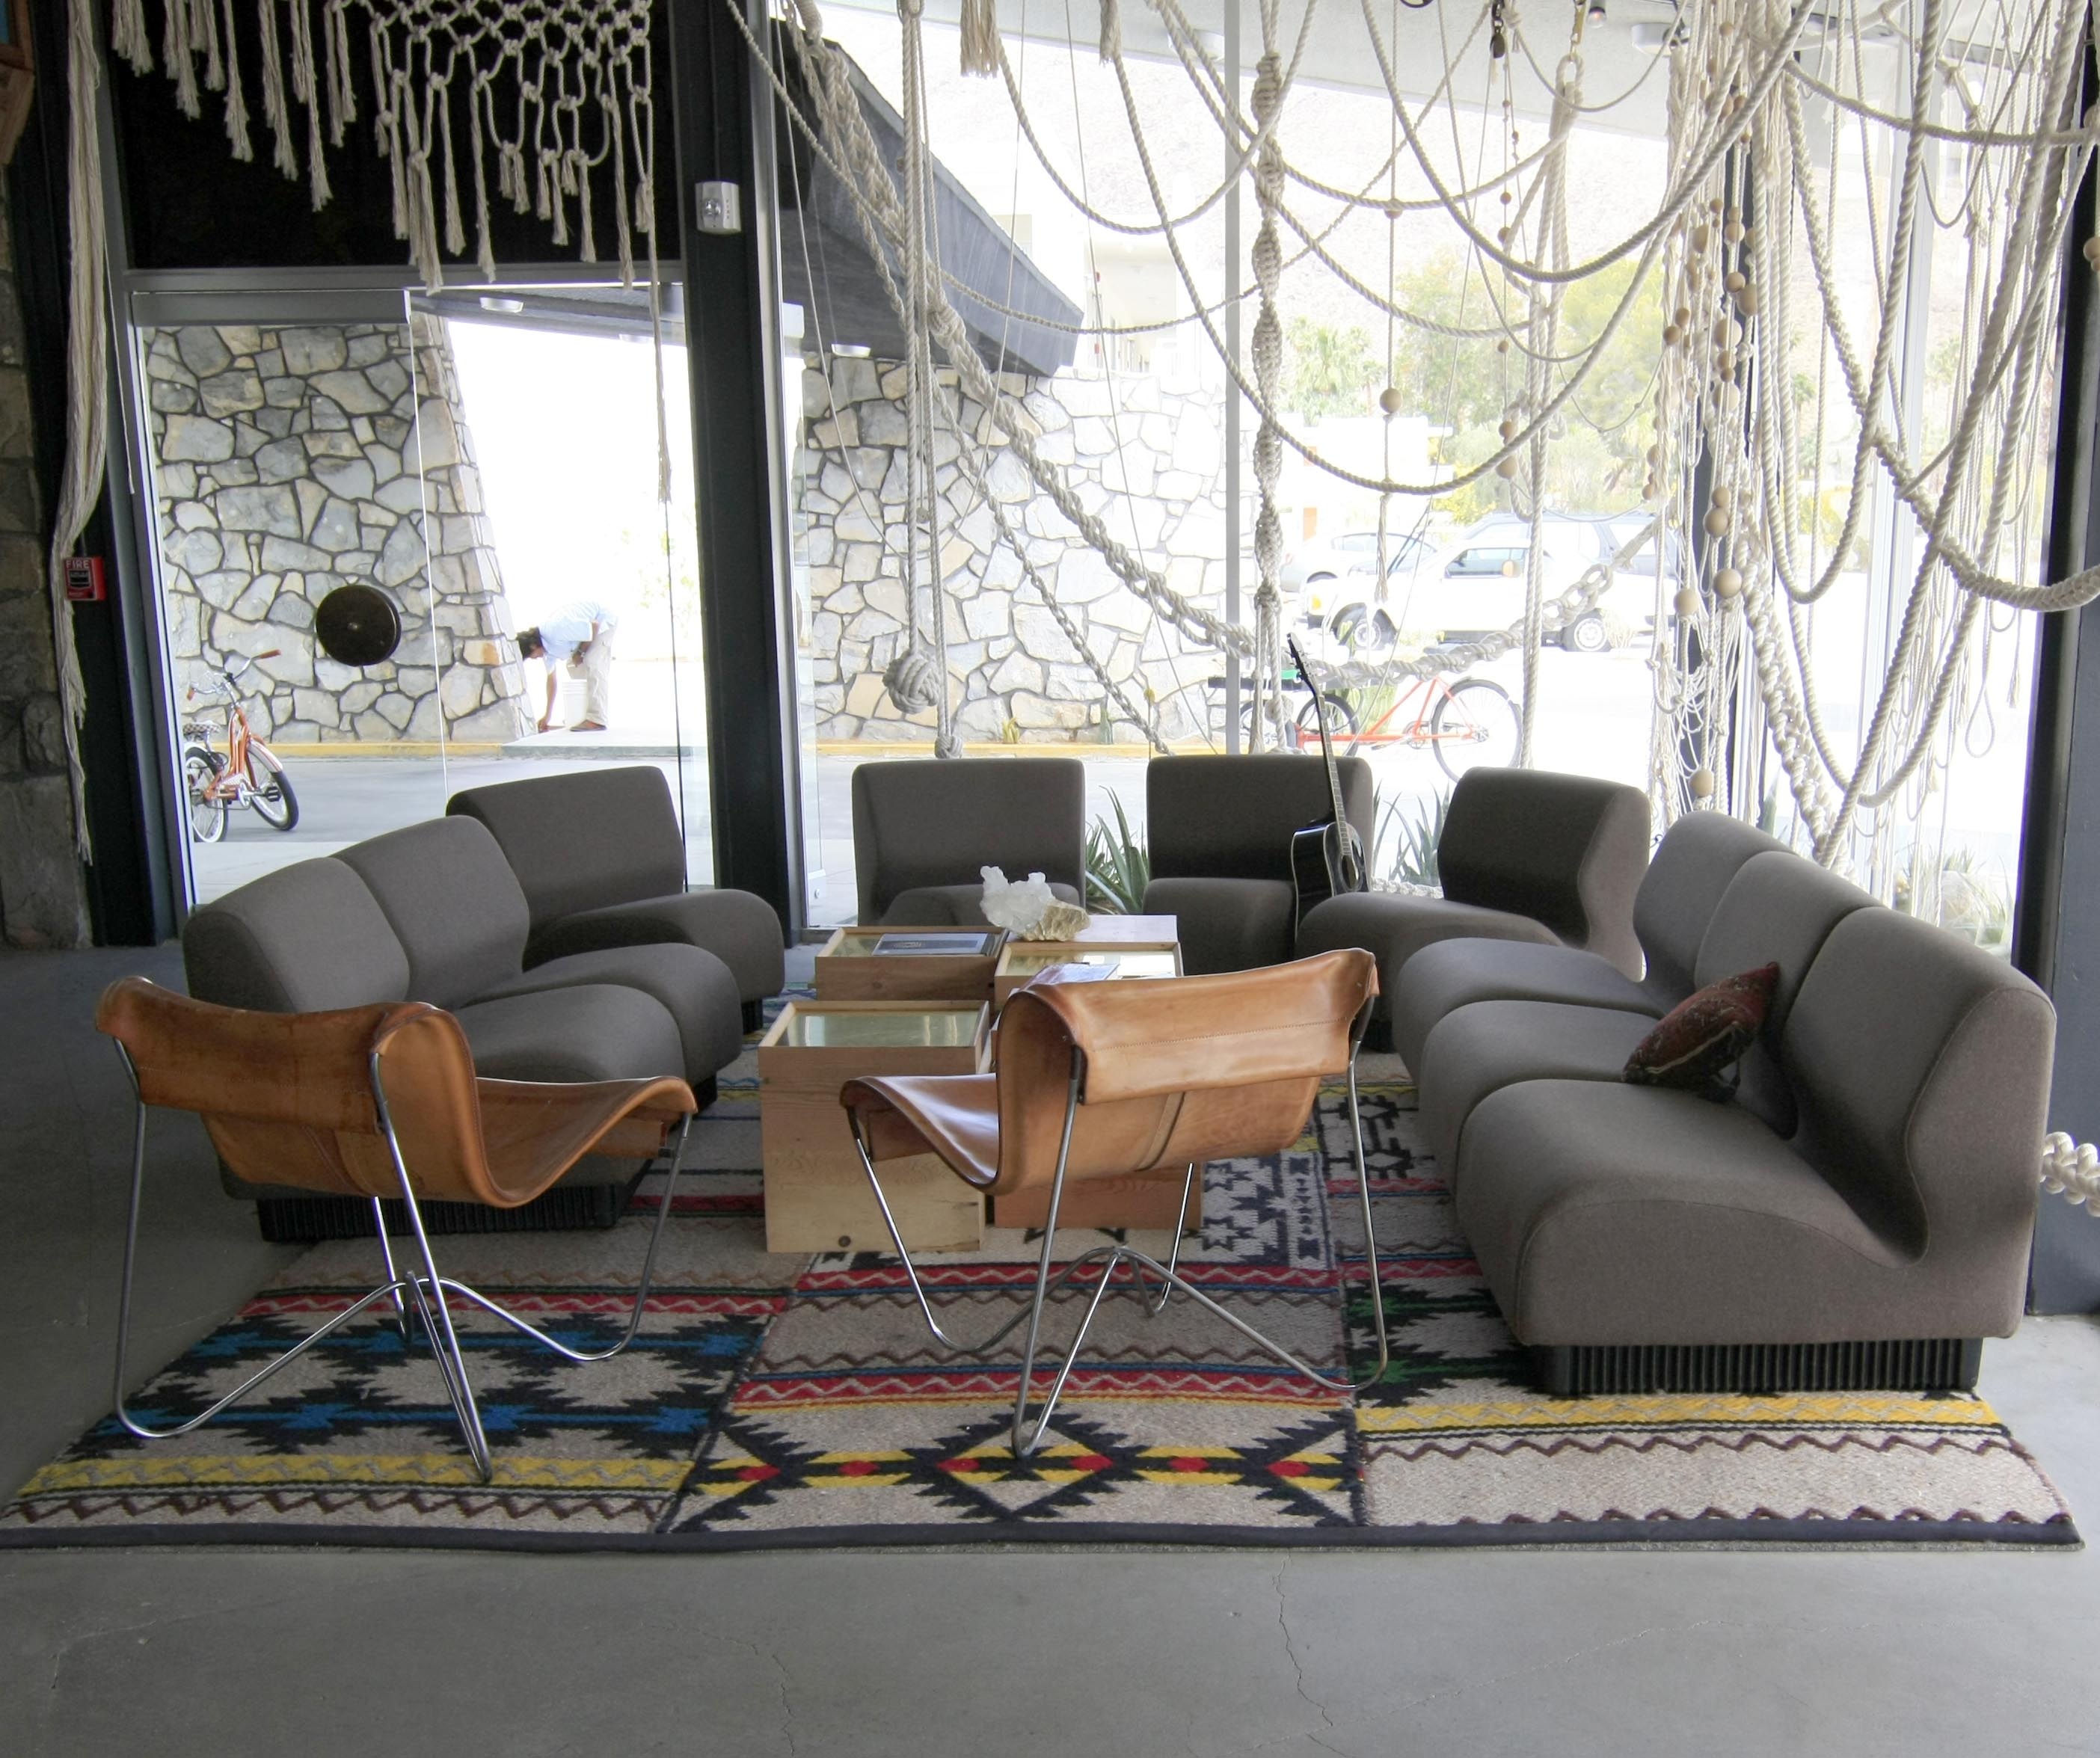 Get The Look Ace Hotel Palm Springs The Frugal Materialist The Frugal Materialist Interior